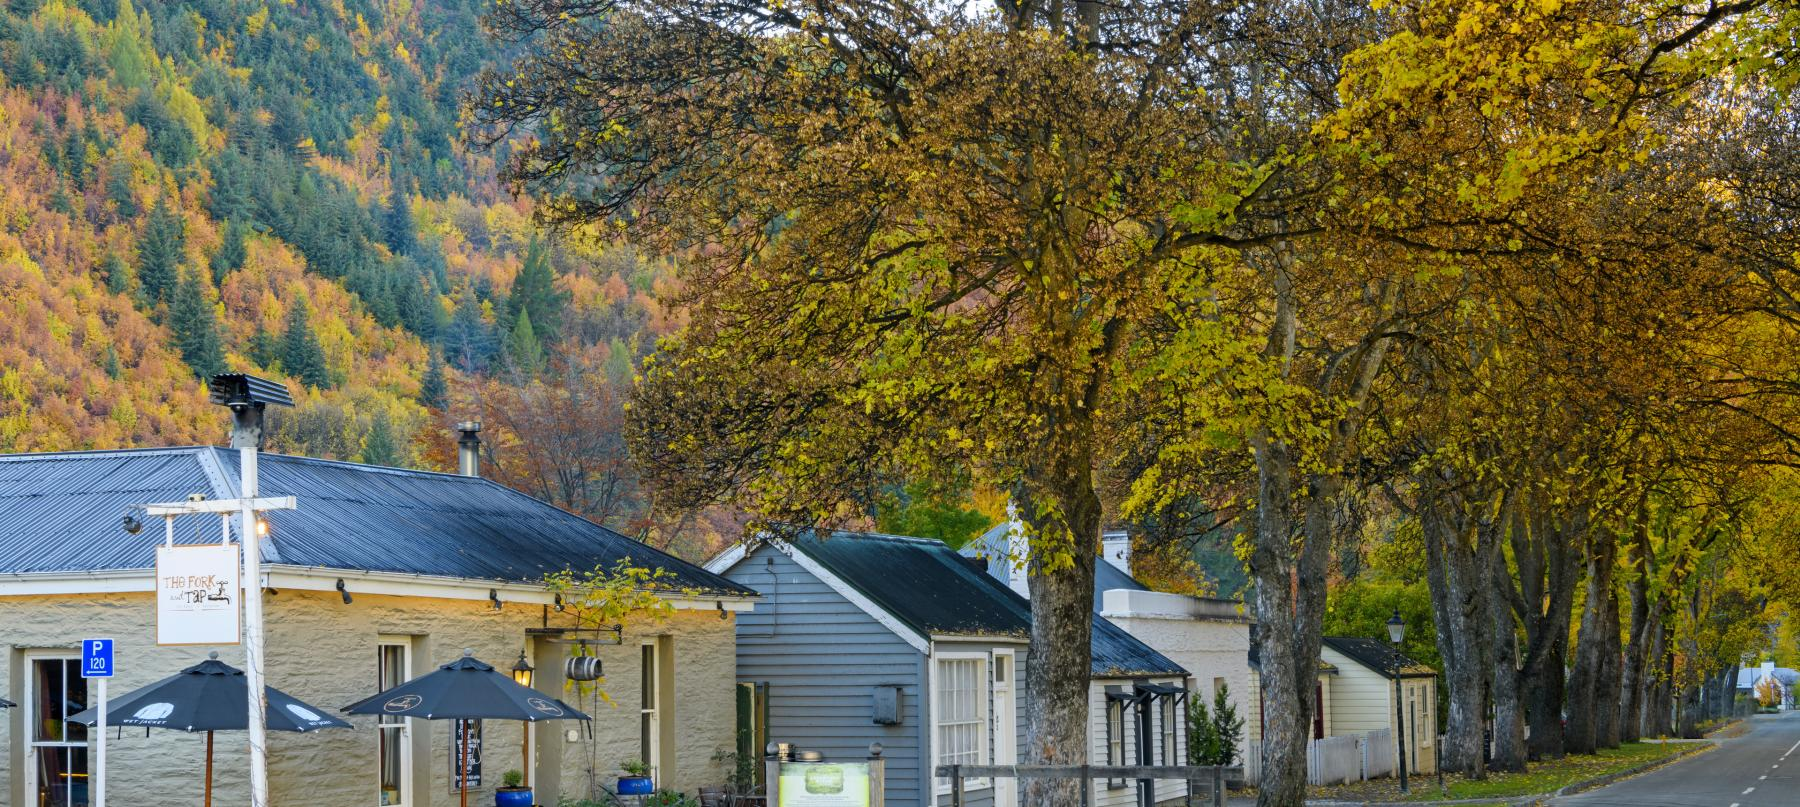 Arrowtown Miners' Cottages